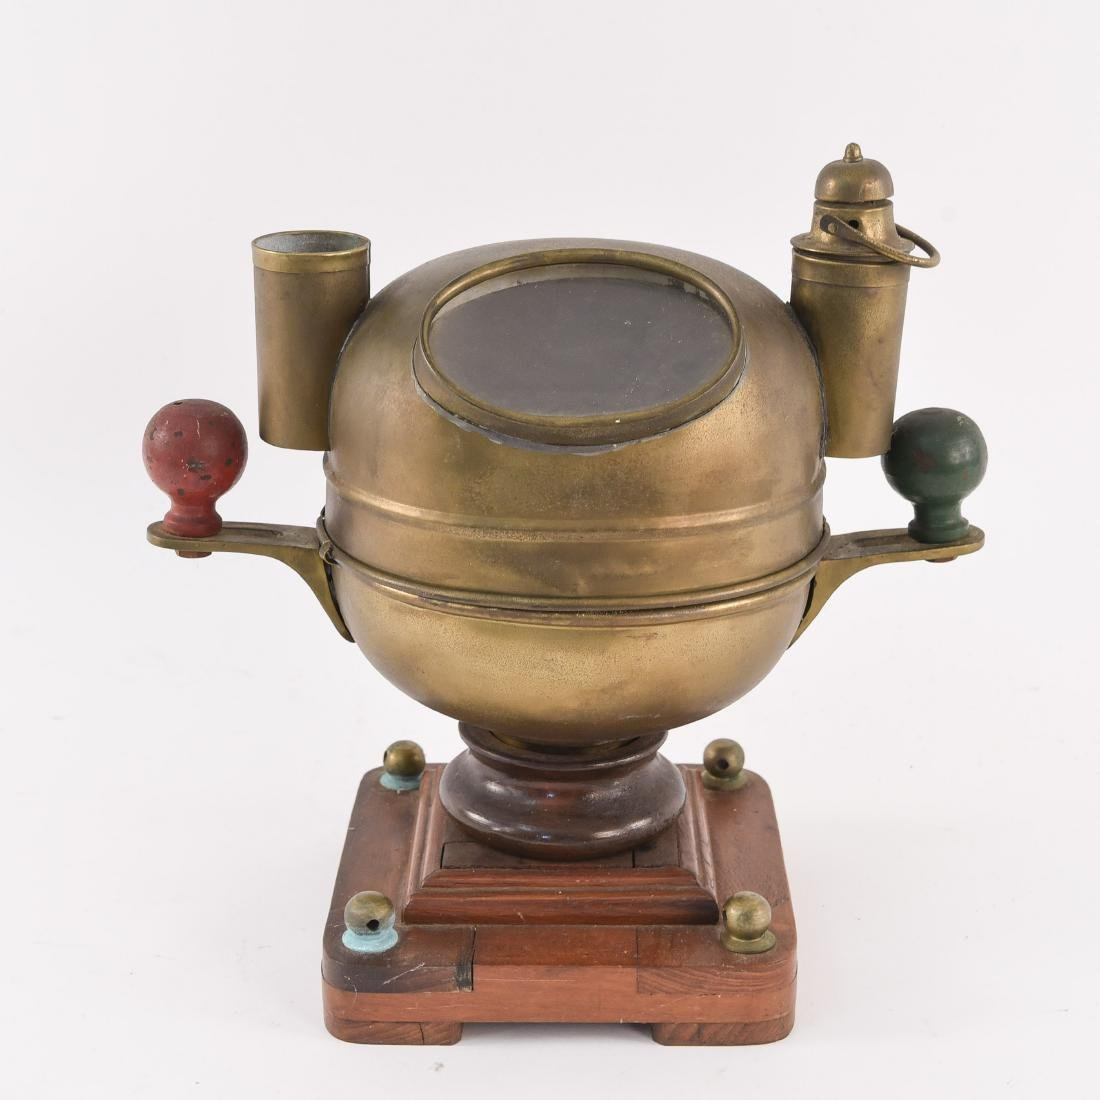 SHIPS BINNACLE COMPASS